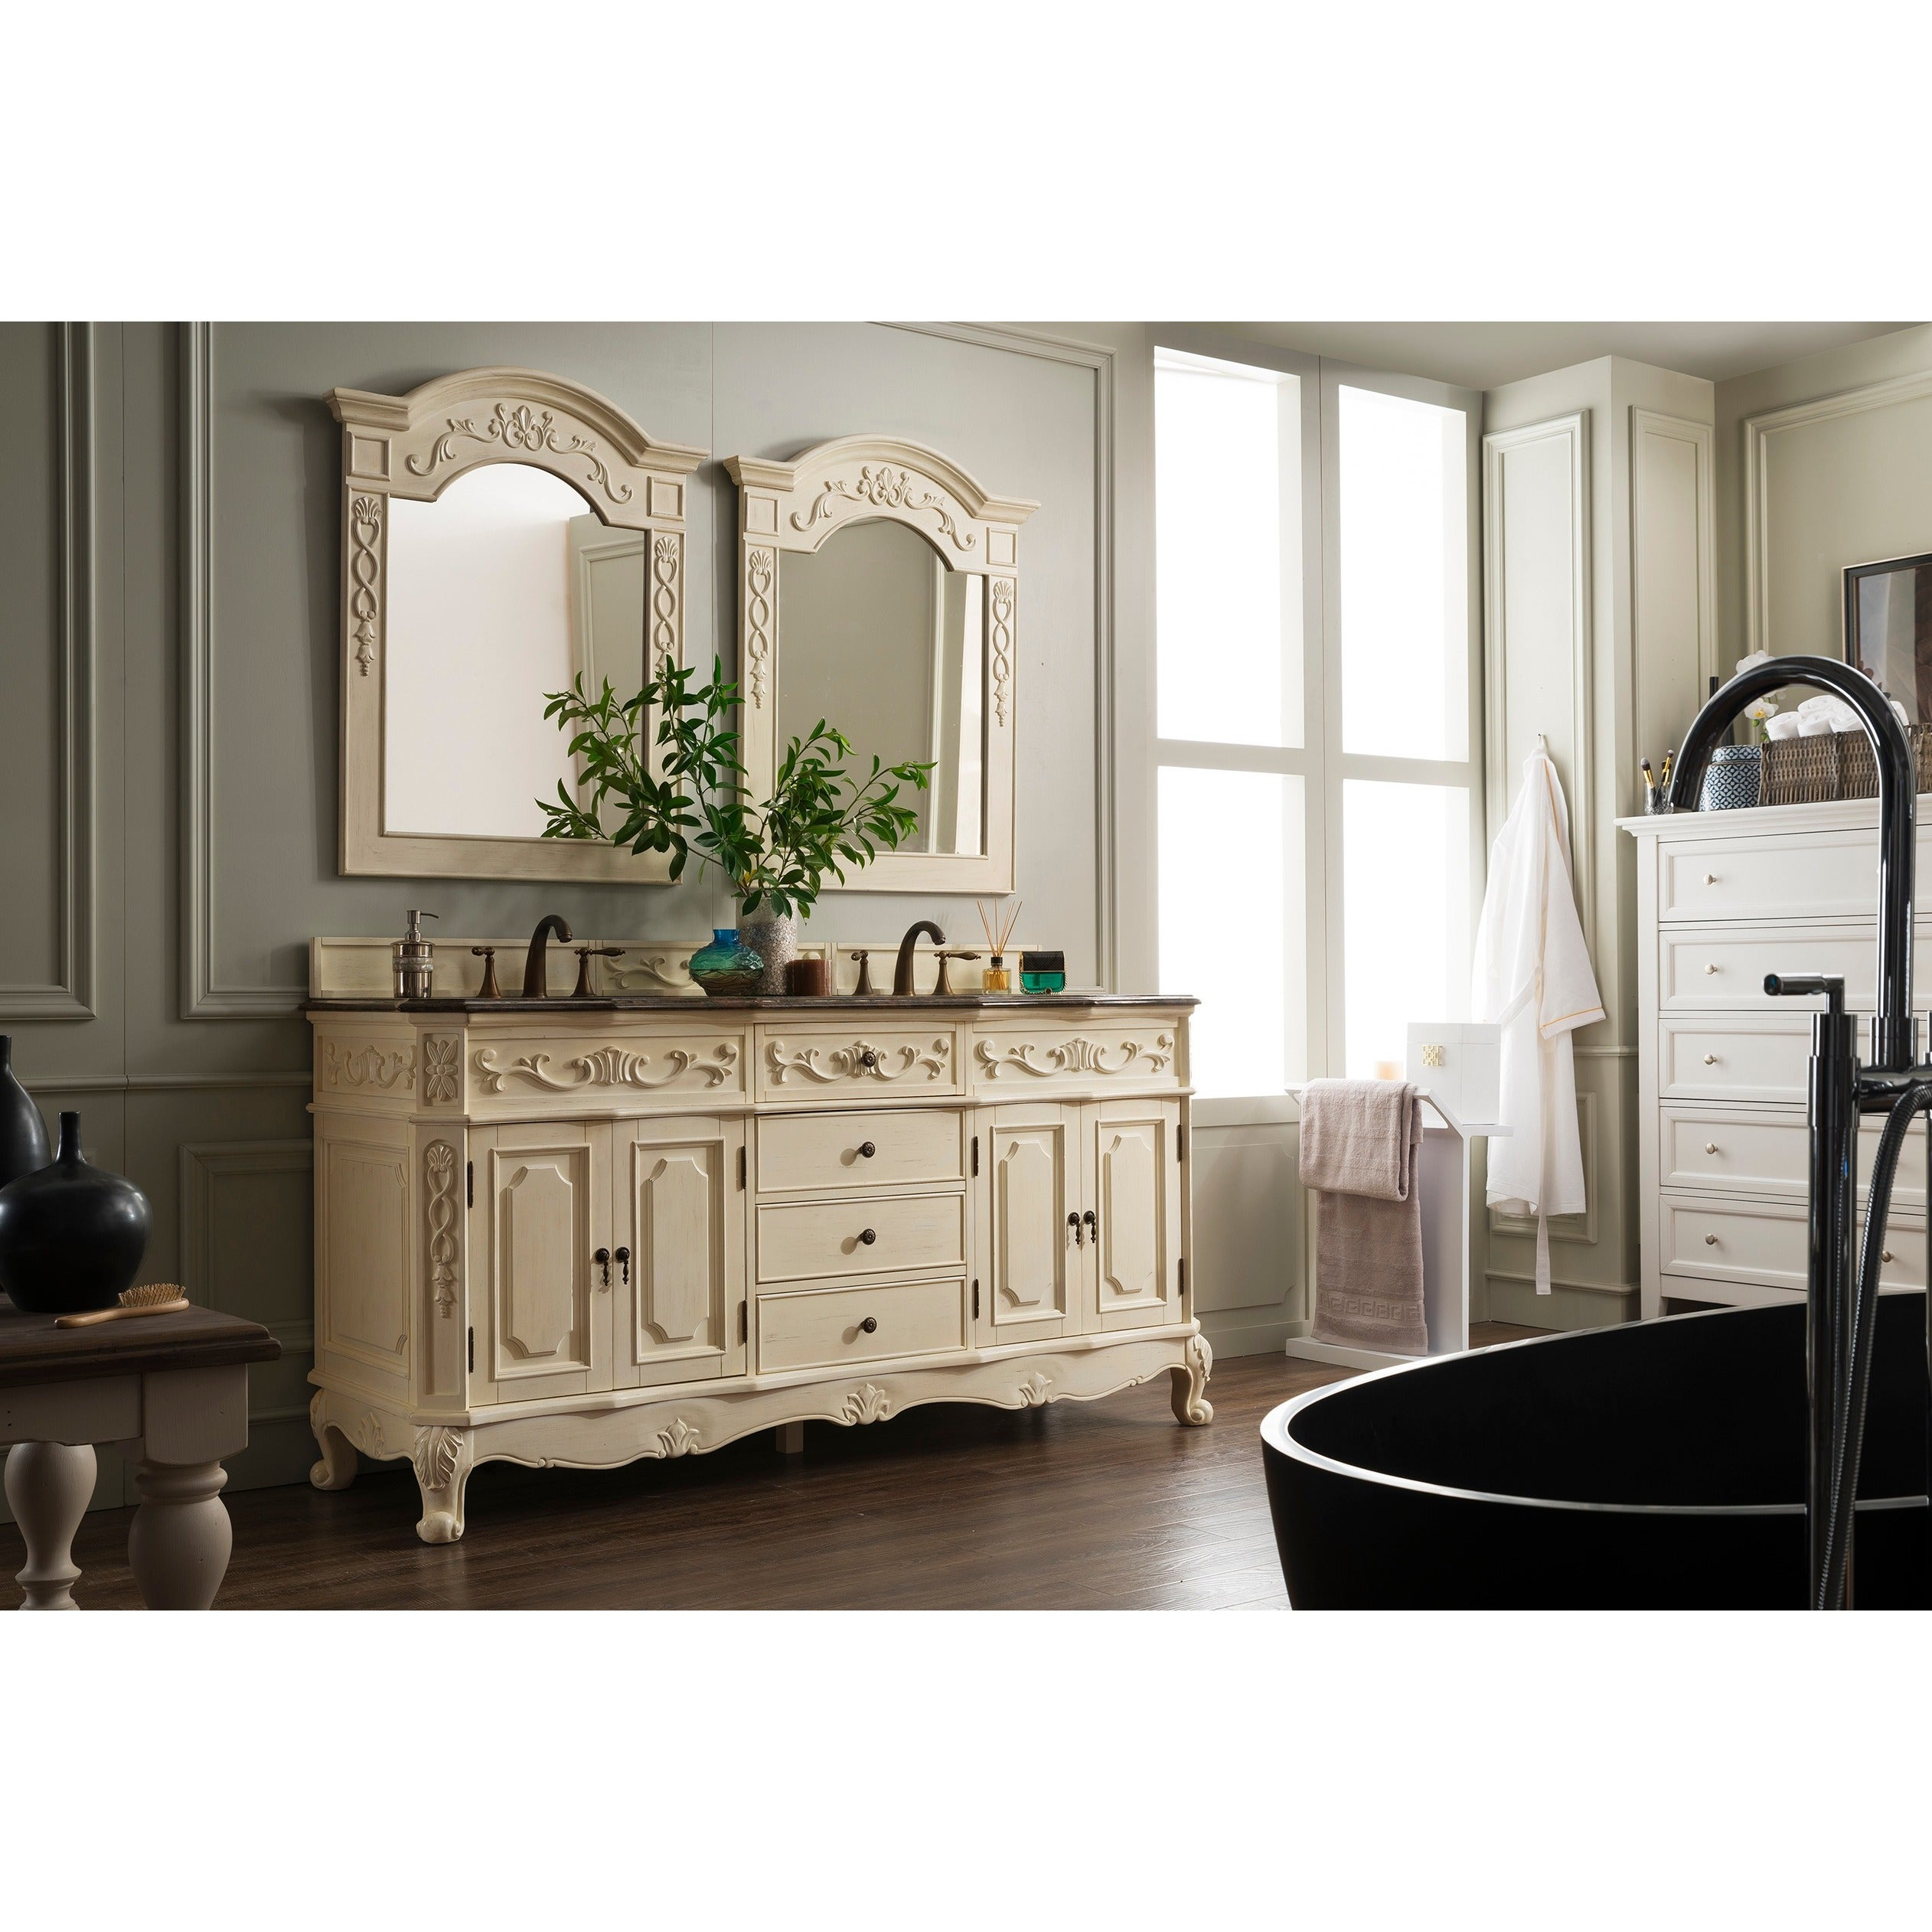 Shop James Martin Furniture Classico Antique White 72-inch Double Granite  Vanity Set - Free Shipping Today - Overstock.com - 9359190